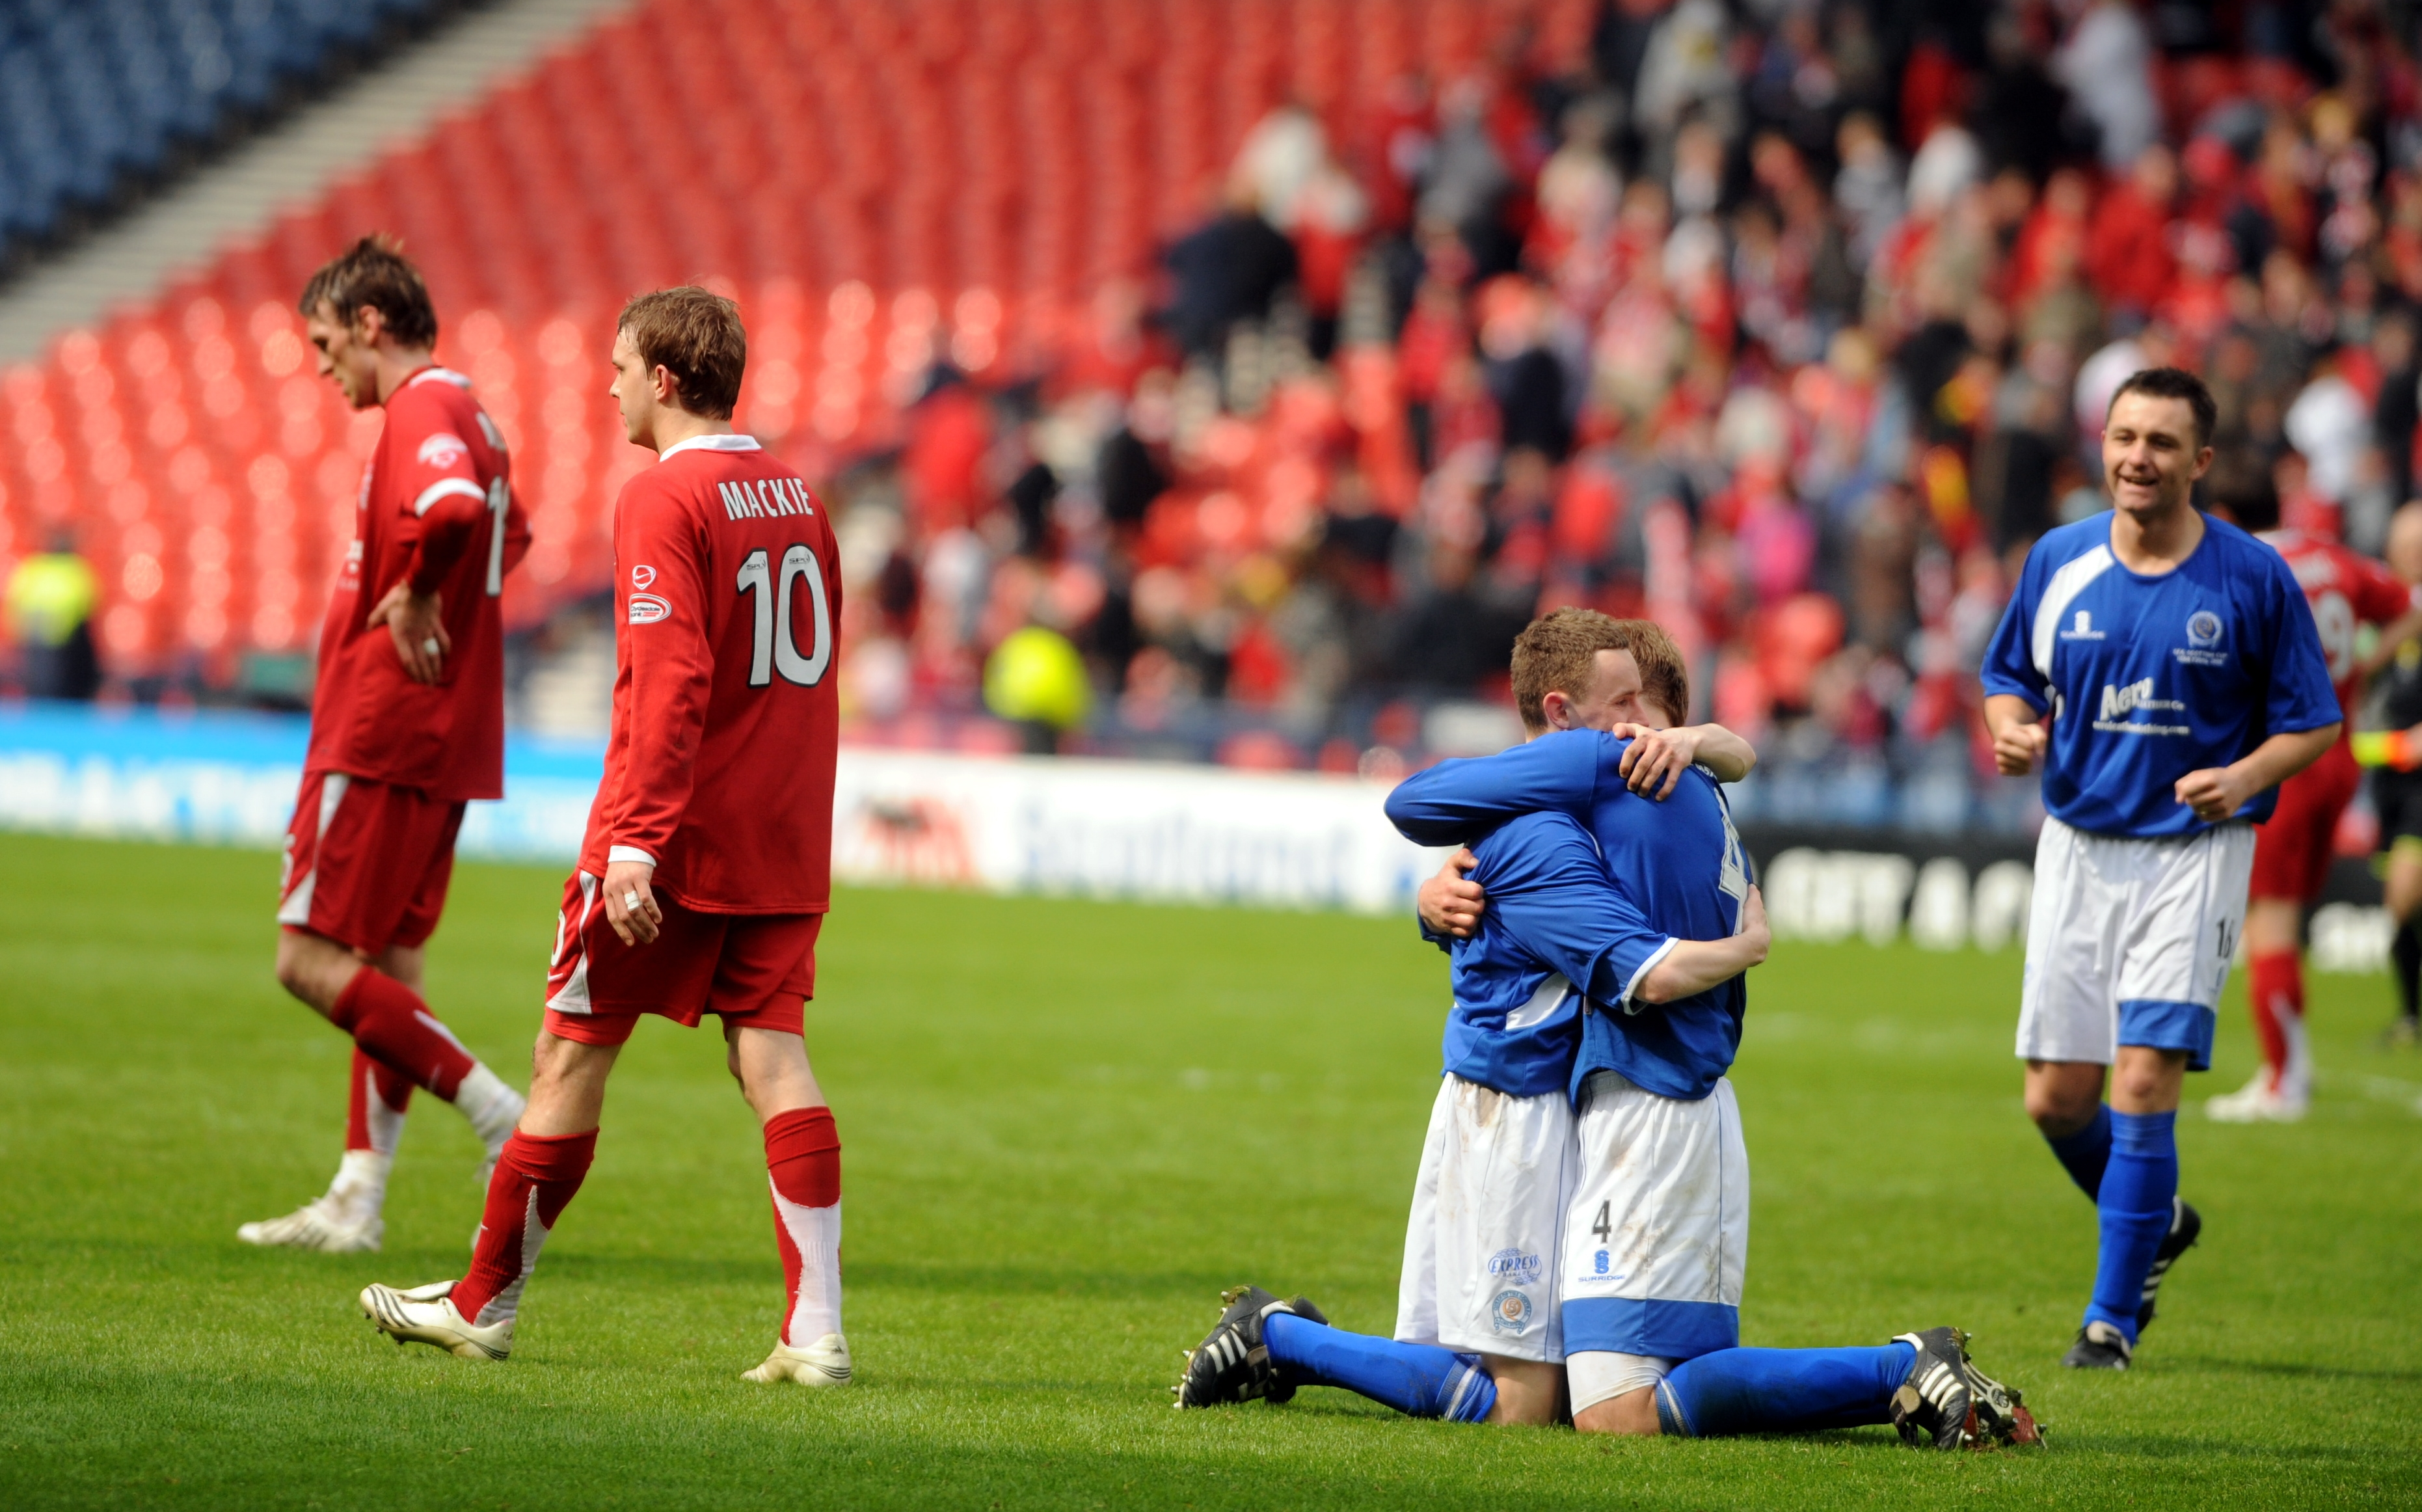 Aberdeen player Darren Mackie walks to the dugout as the Queen of the South players celebrate.